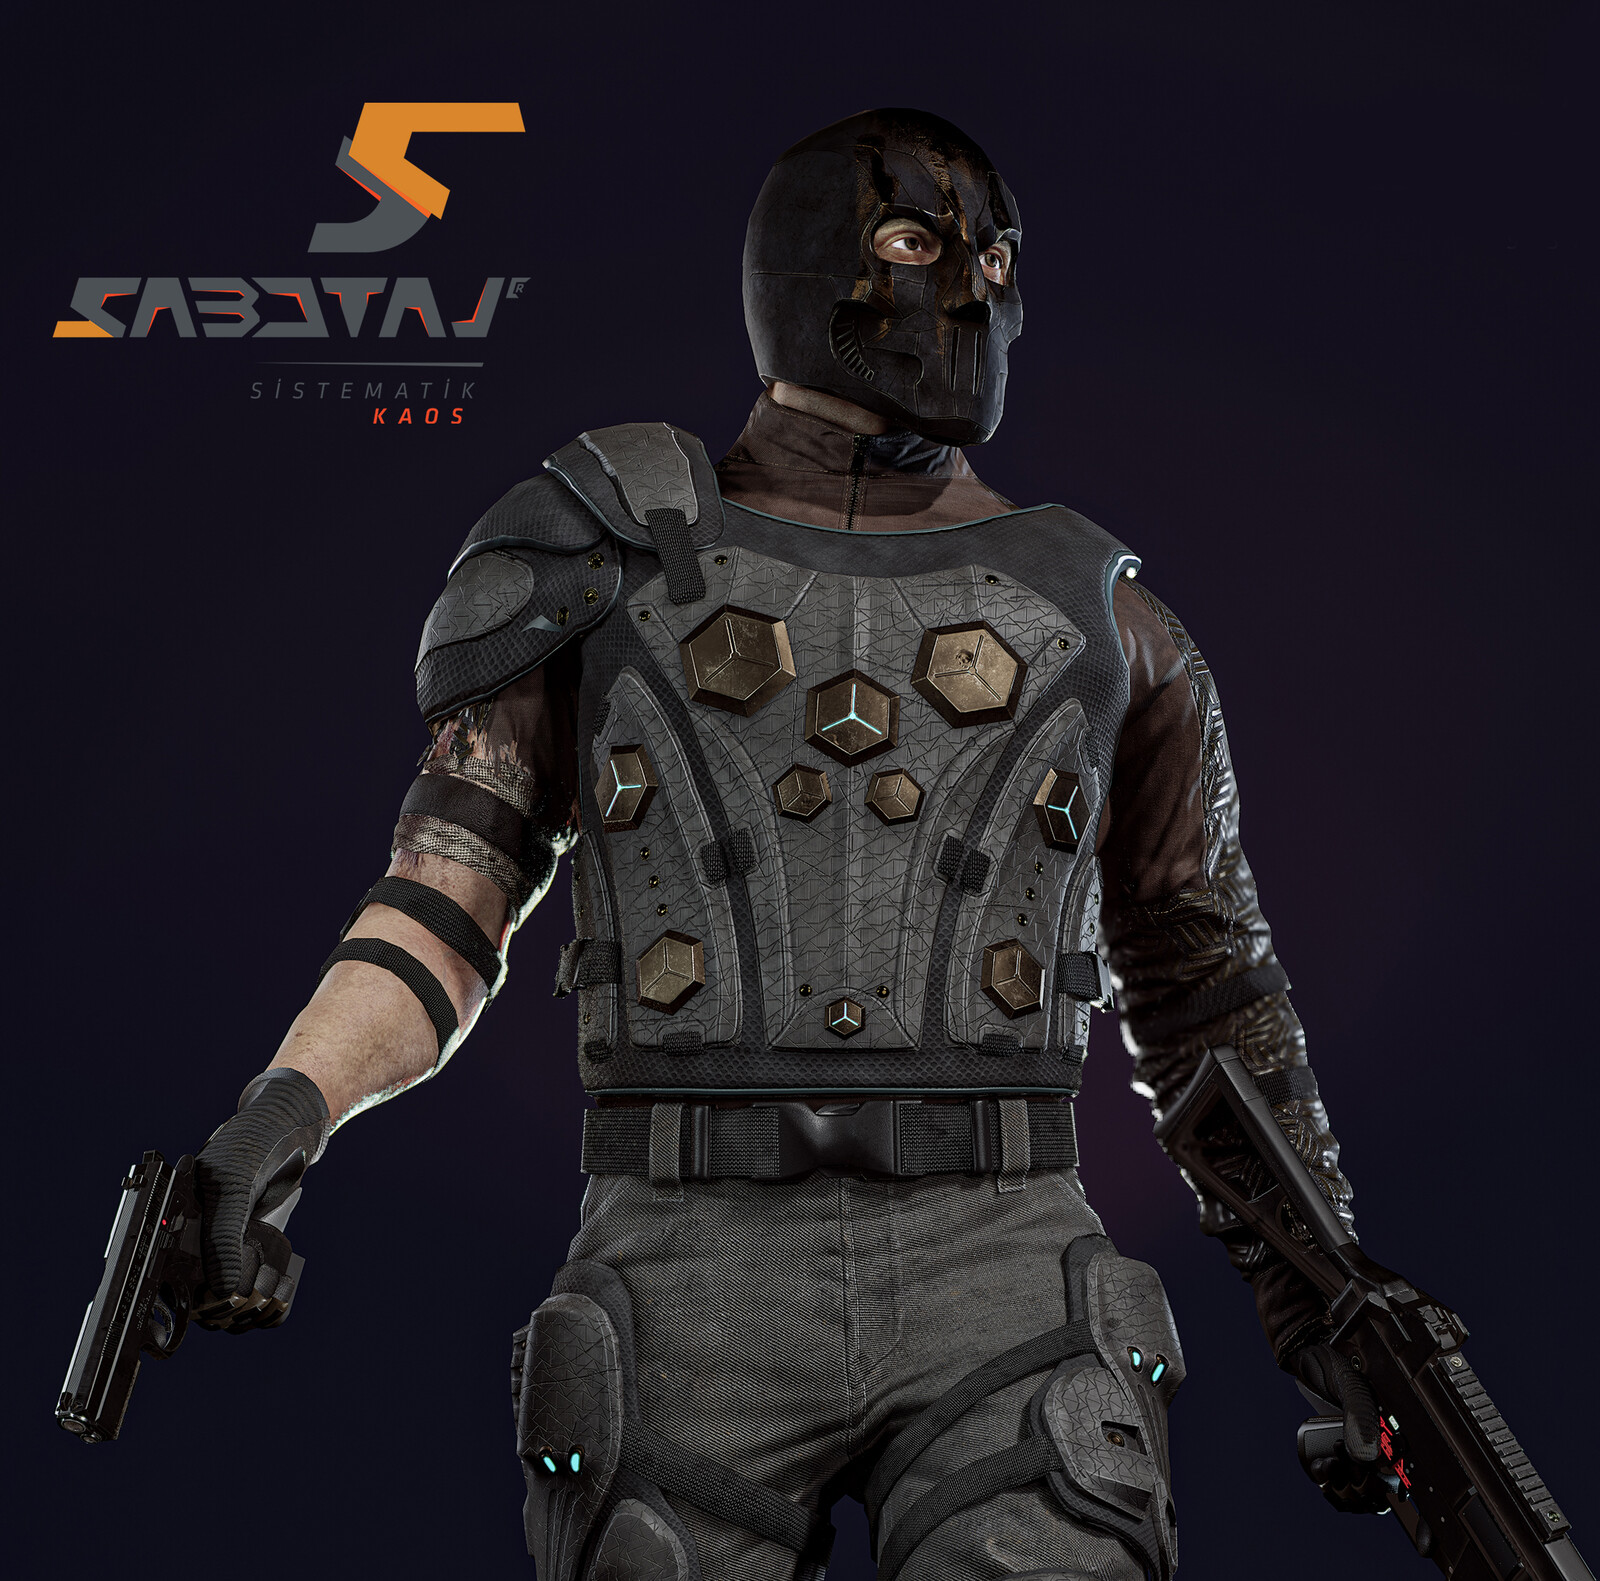 William Character Art for Sabotaj (Sabotage) MMO FPS Game